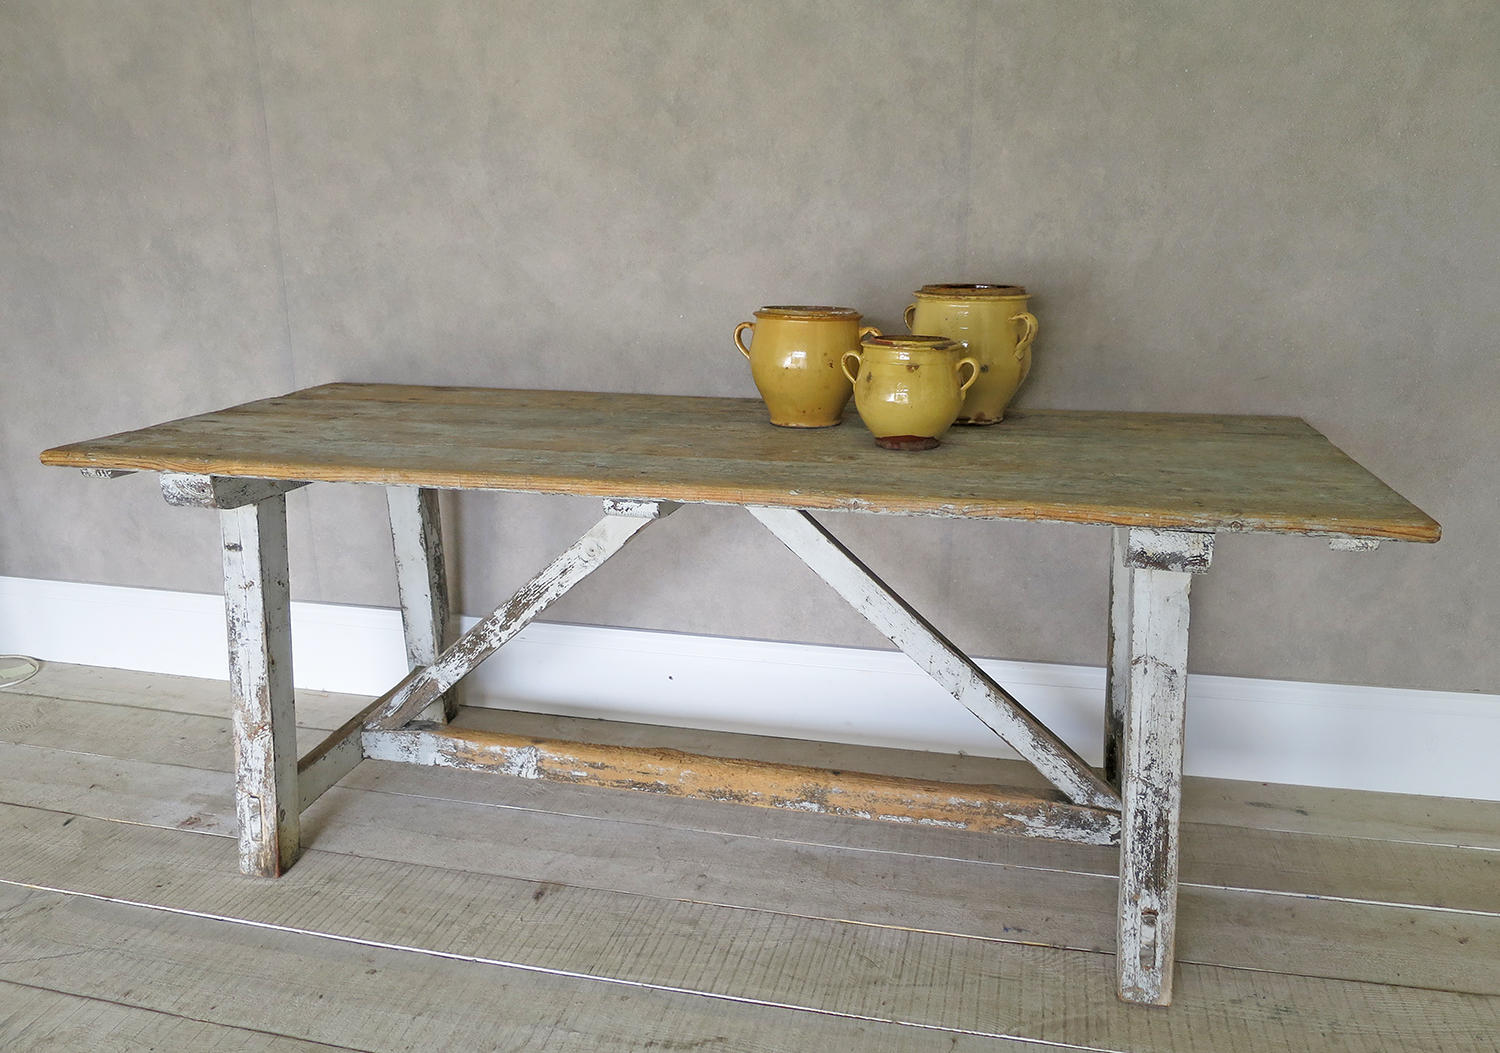 19th century Italian pine TrestleTable with remains of Original Paint